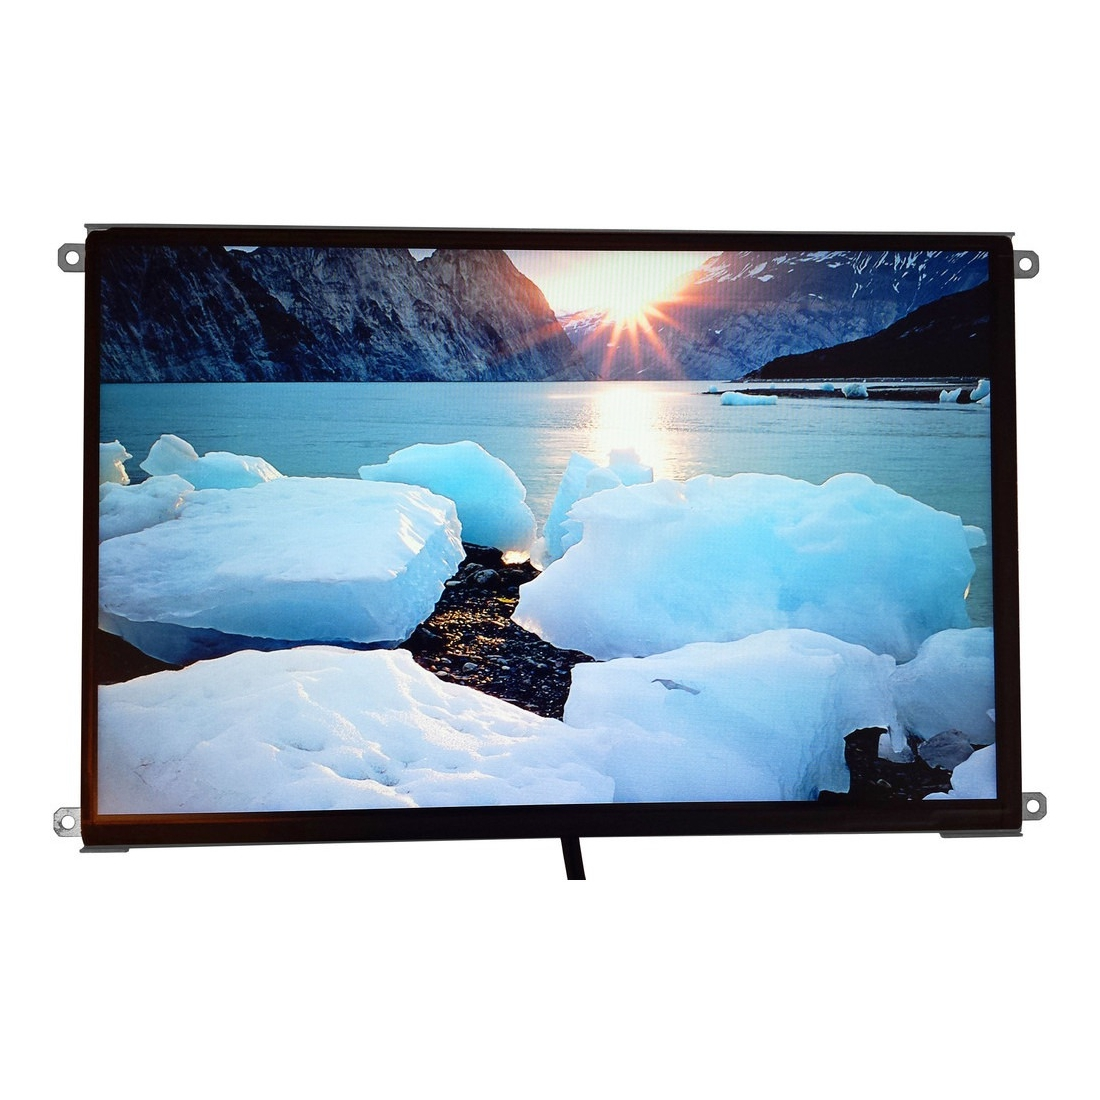 "Mimo Monitors Um-1080-of 10.1"" Open-frame Lcd Monitor - 16:10 - 14 Ms - 1280 X 800 - 262,144 Colors - 350 Nit - 800:1 - Wxga - Usb - Rohs (um1080-of)"